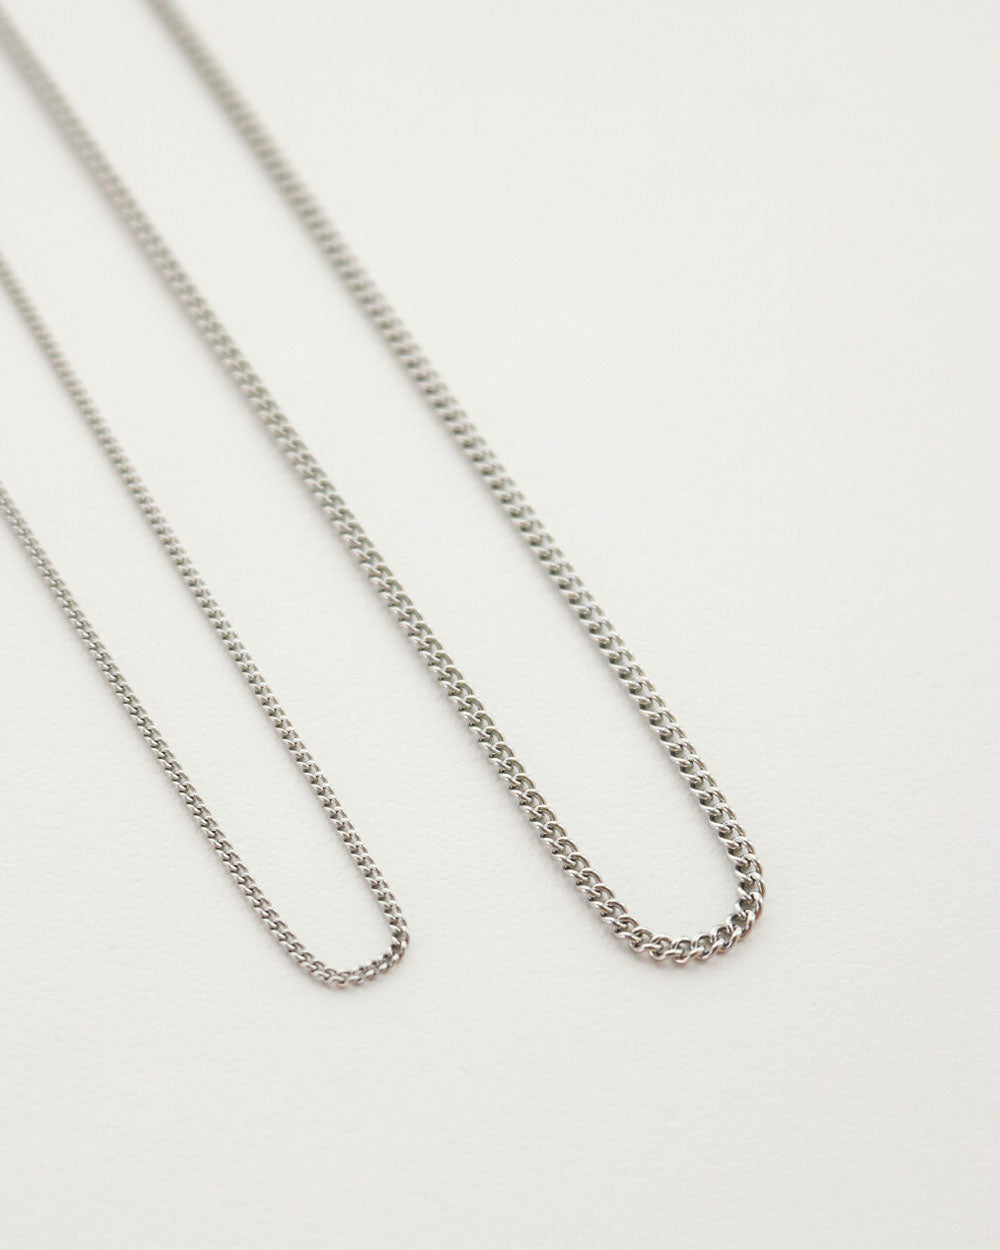 Classic chain necklace design in silver plated stainless steel - The Hexad